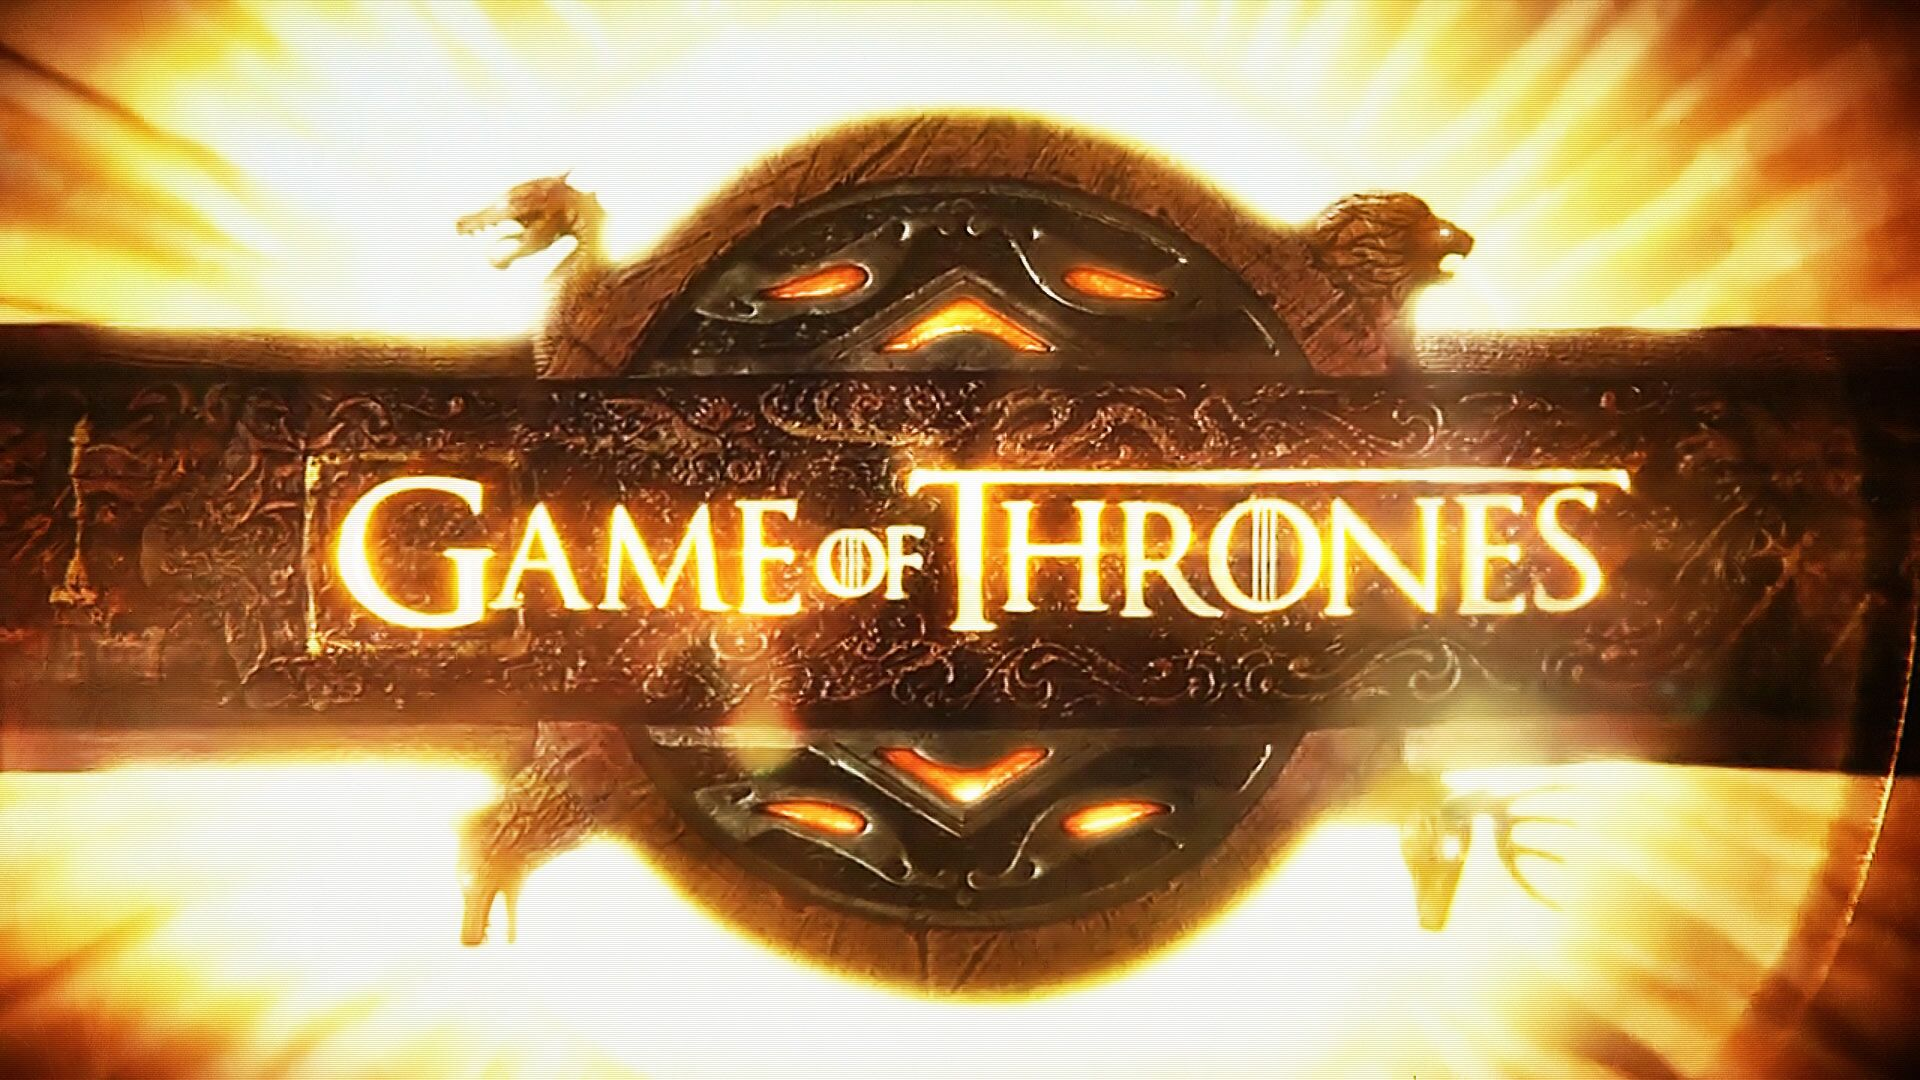 Best live streams to watch Game of Thrones